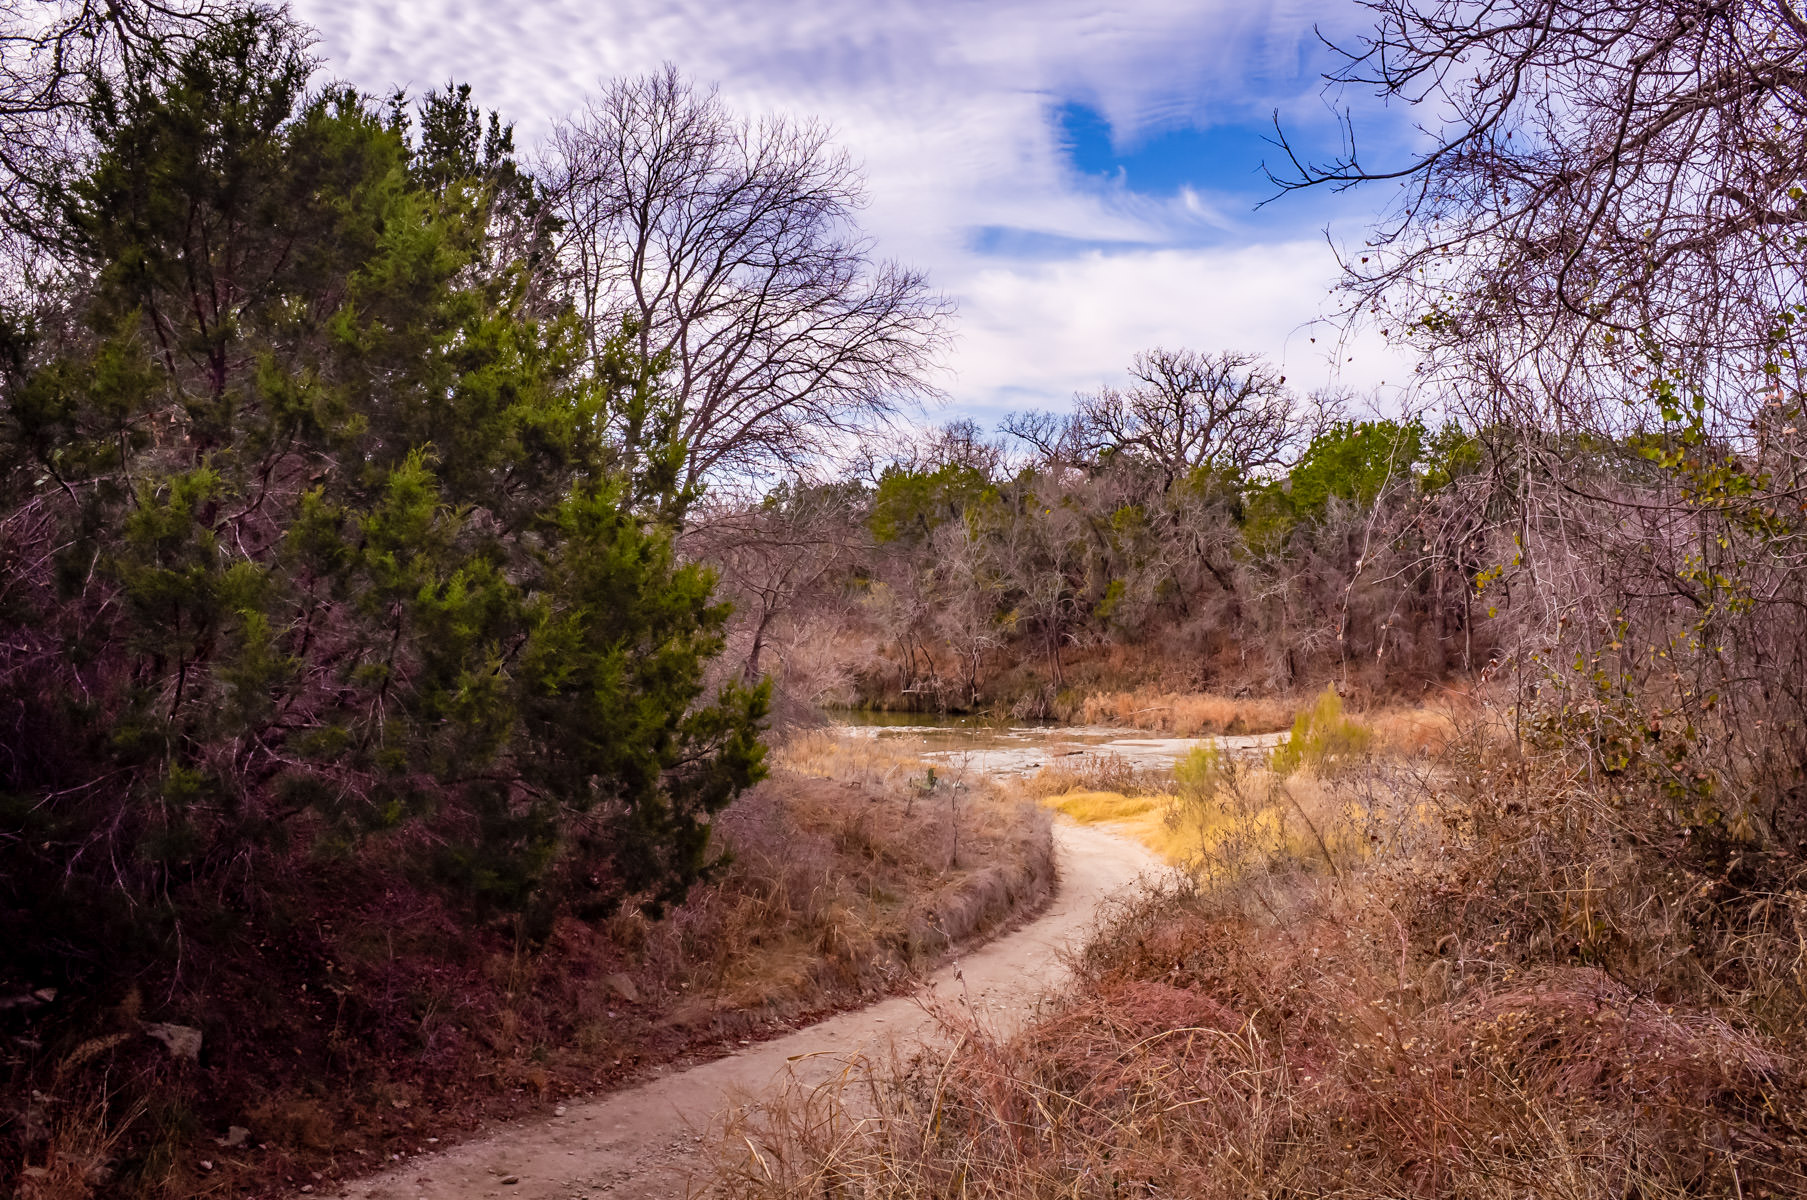 A path leads to the Paluxy River, Dinosaur Valley State Park, Texas.